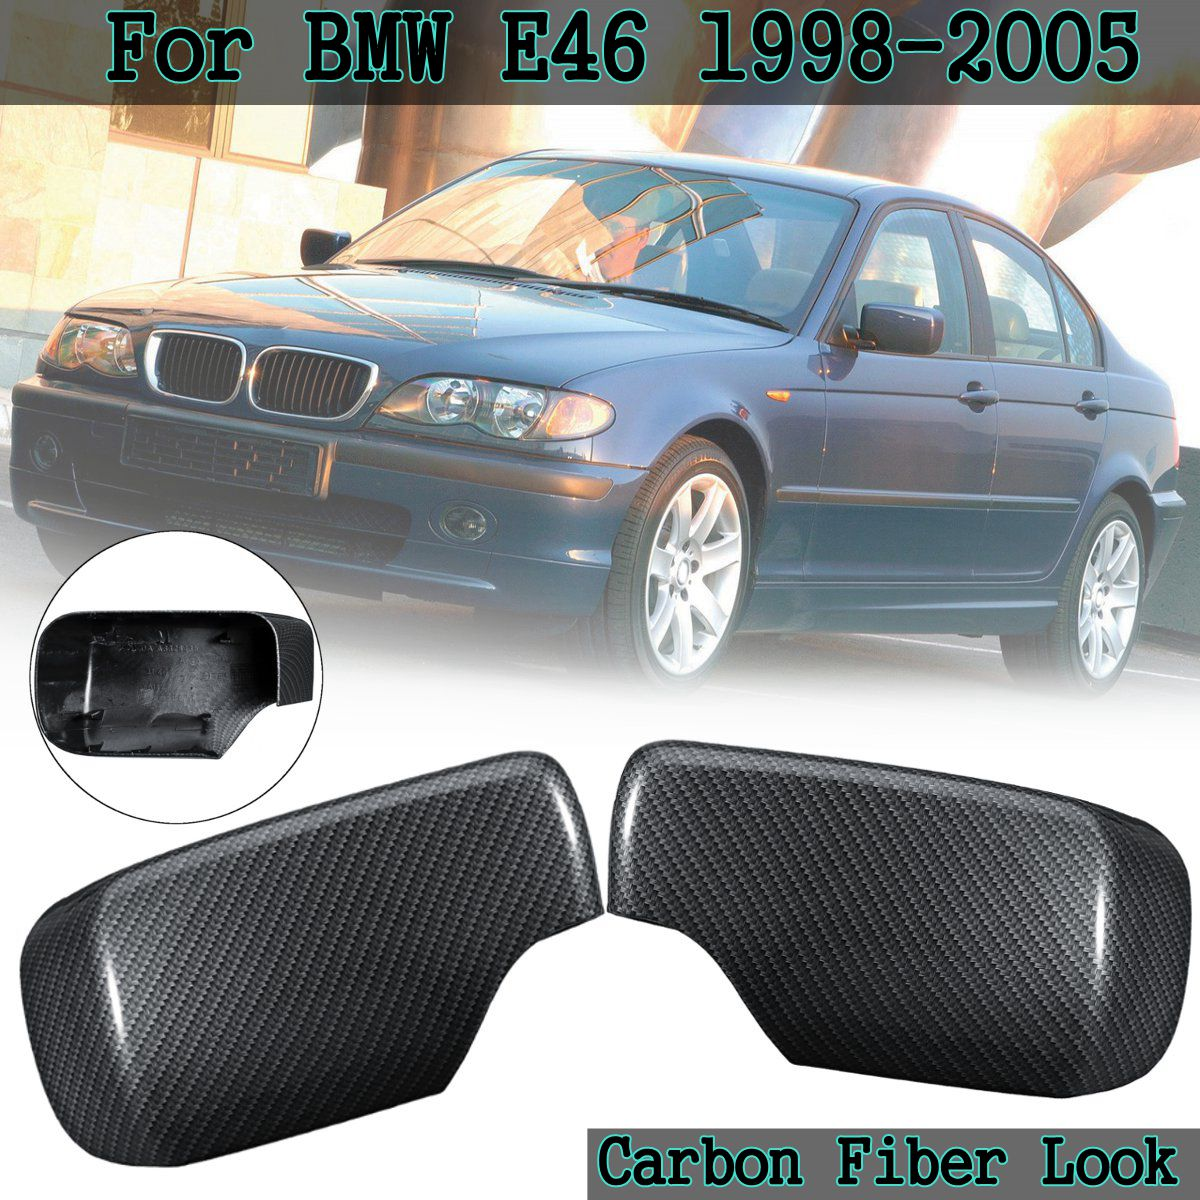 1 Pair Car Styling Carbon Fiber Wing Door Rearview Heated Mirrors Cap Mirror Covers For BMW E46 1998 2005